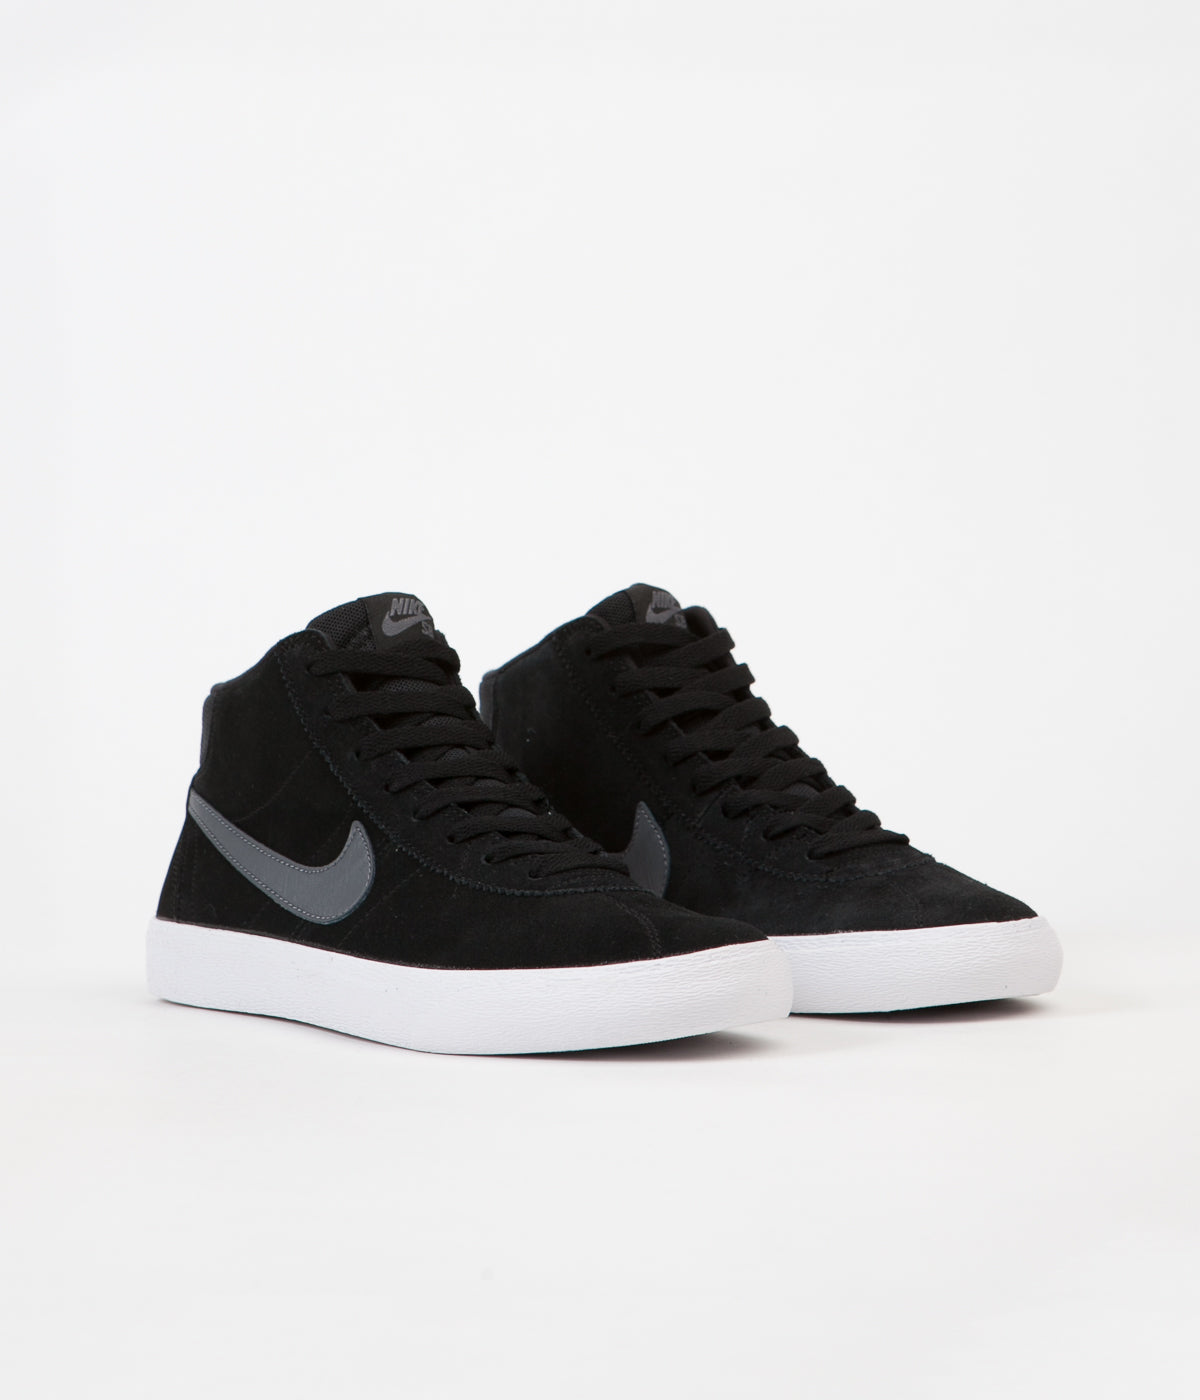 best website 39bec d740a spain womens 326ef 2fa2b cheapest nike sb bruin high skateboarding 87a50  636bf f6971 c45fe